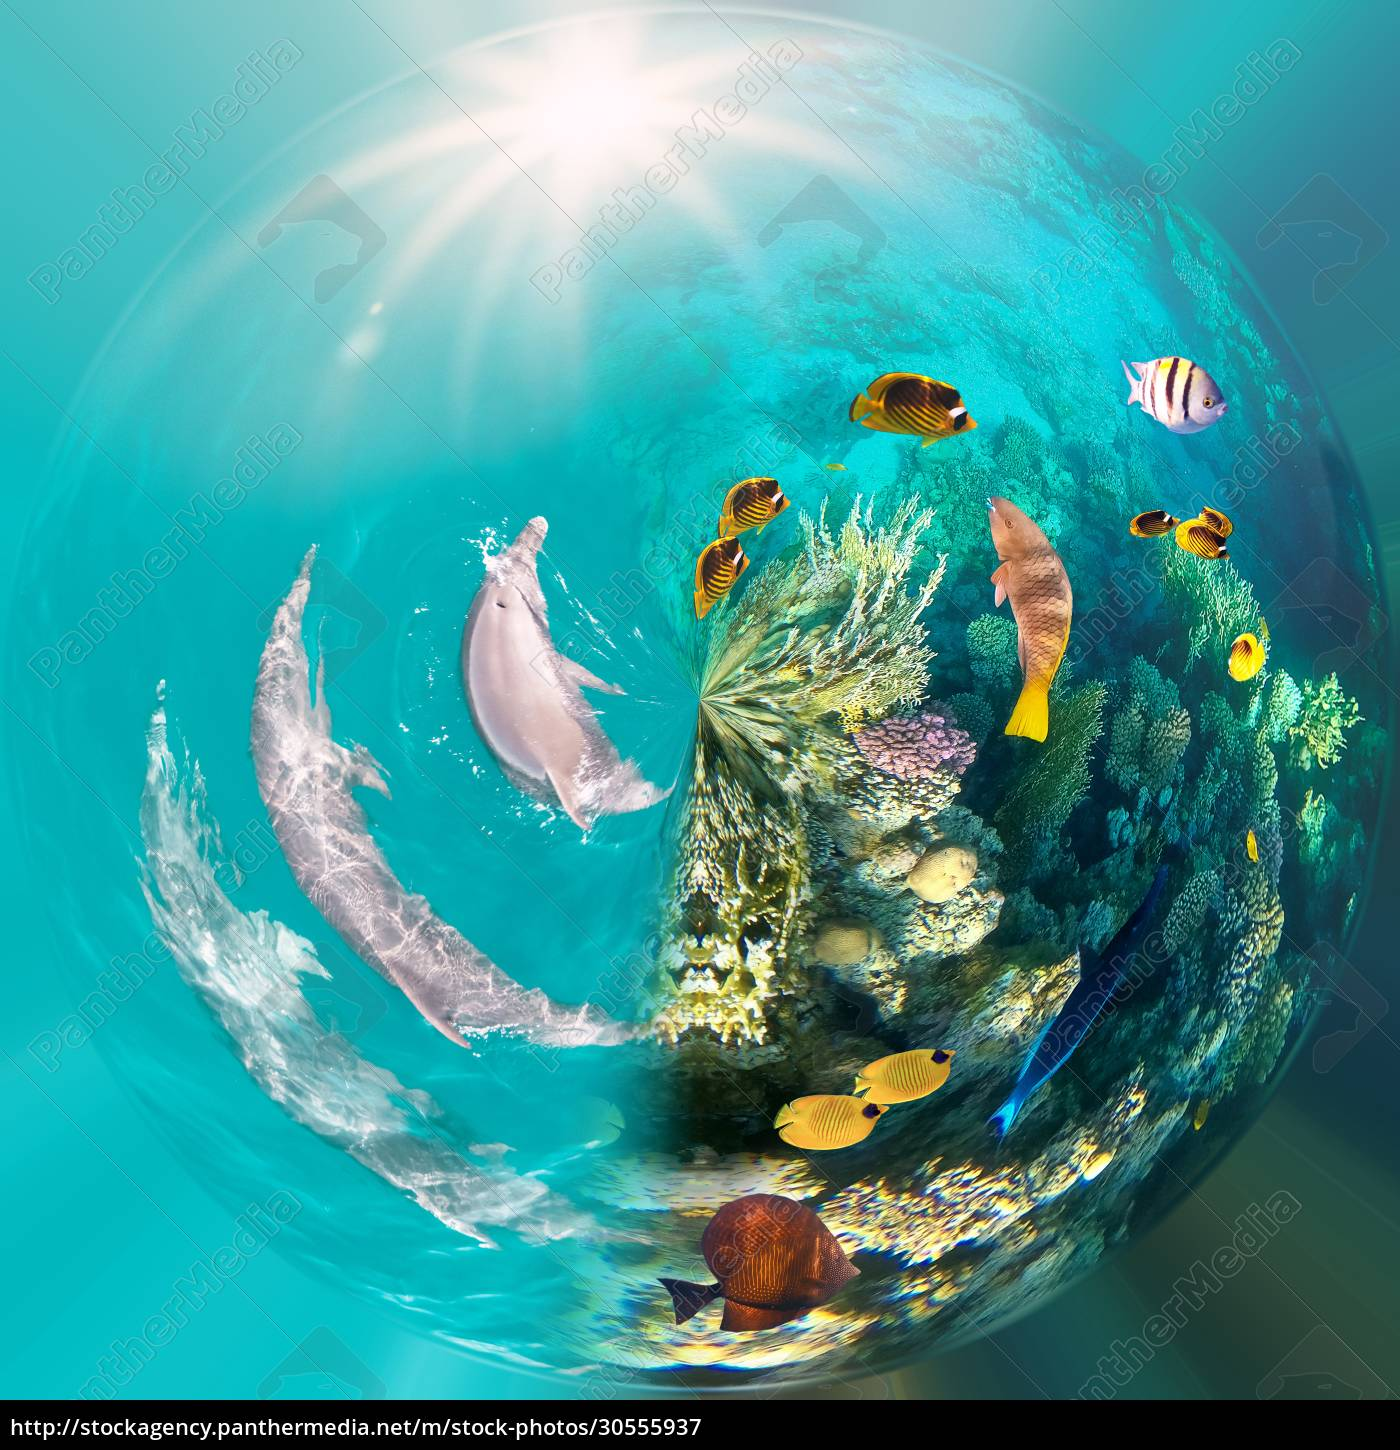 underwater, scene, with, dolphins, and, colorful - 30555937